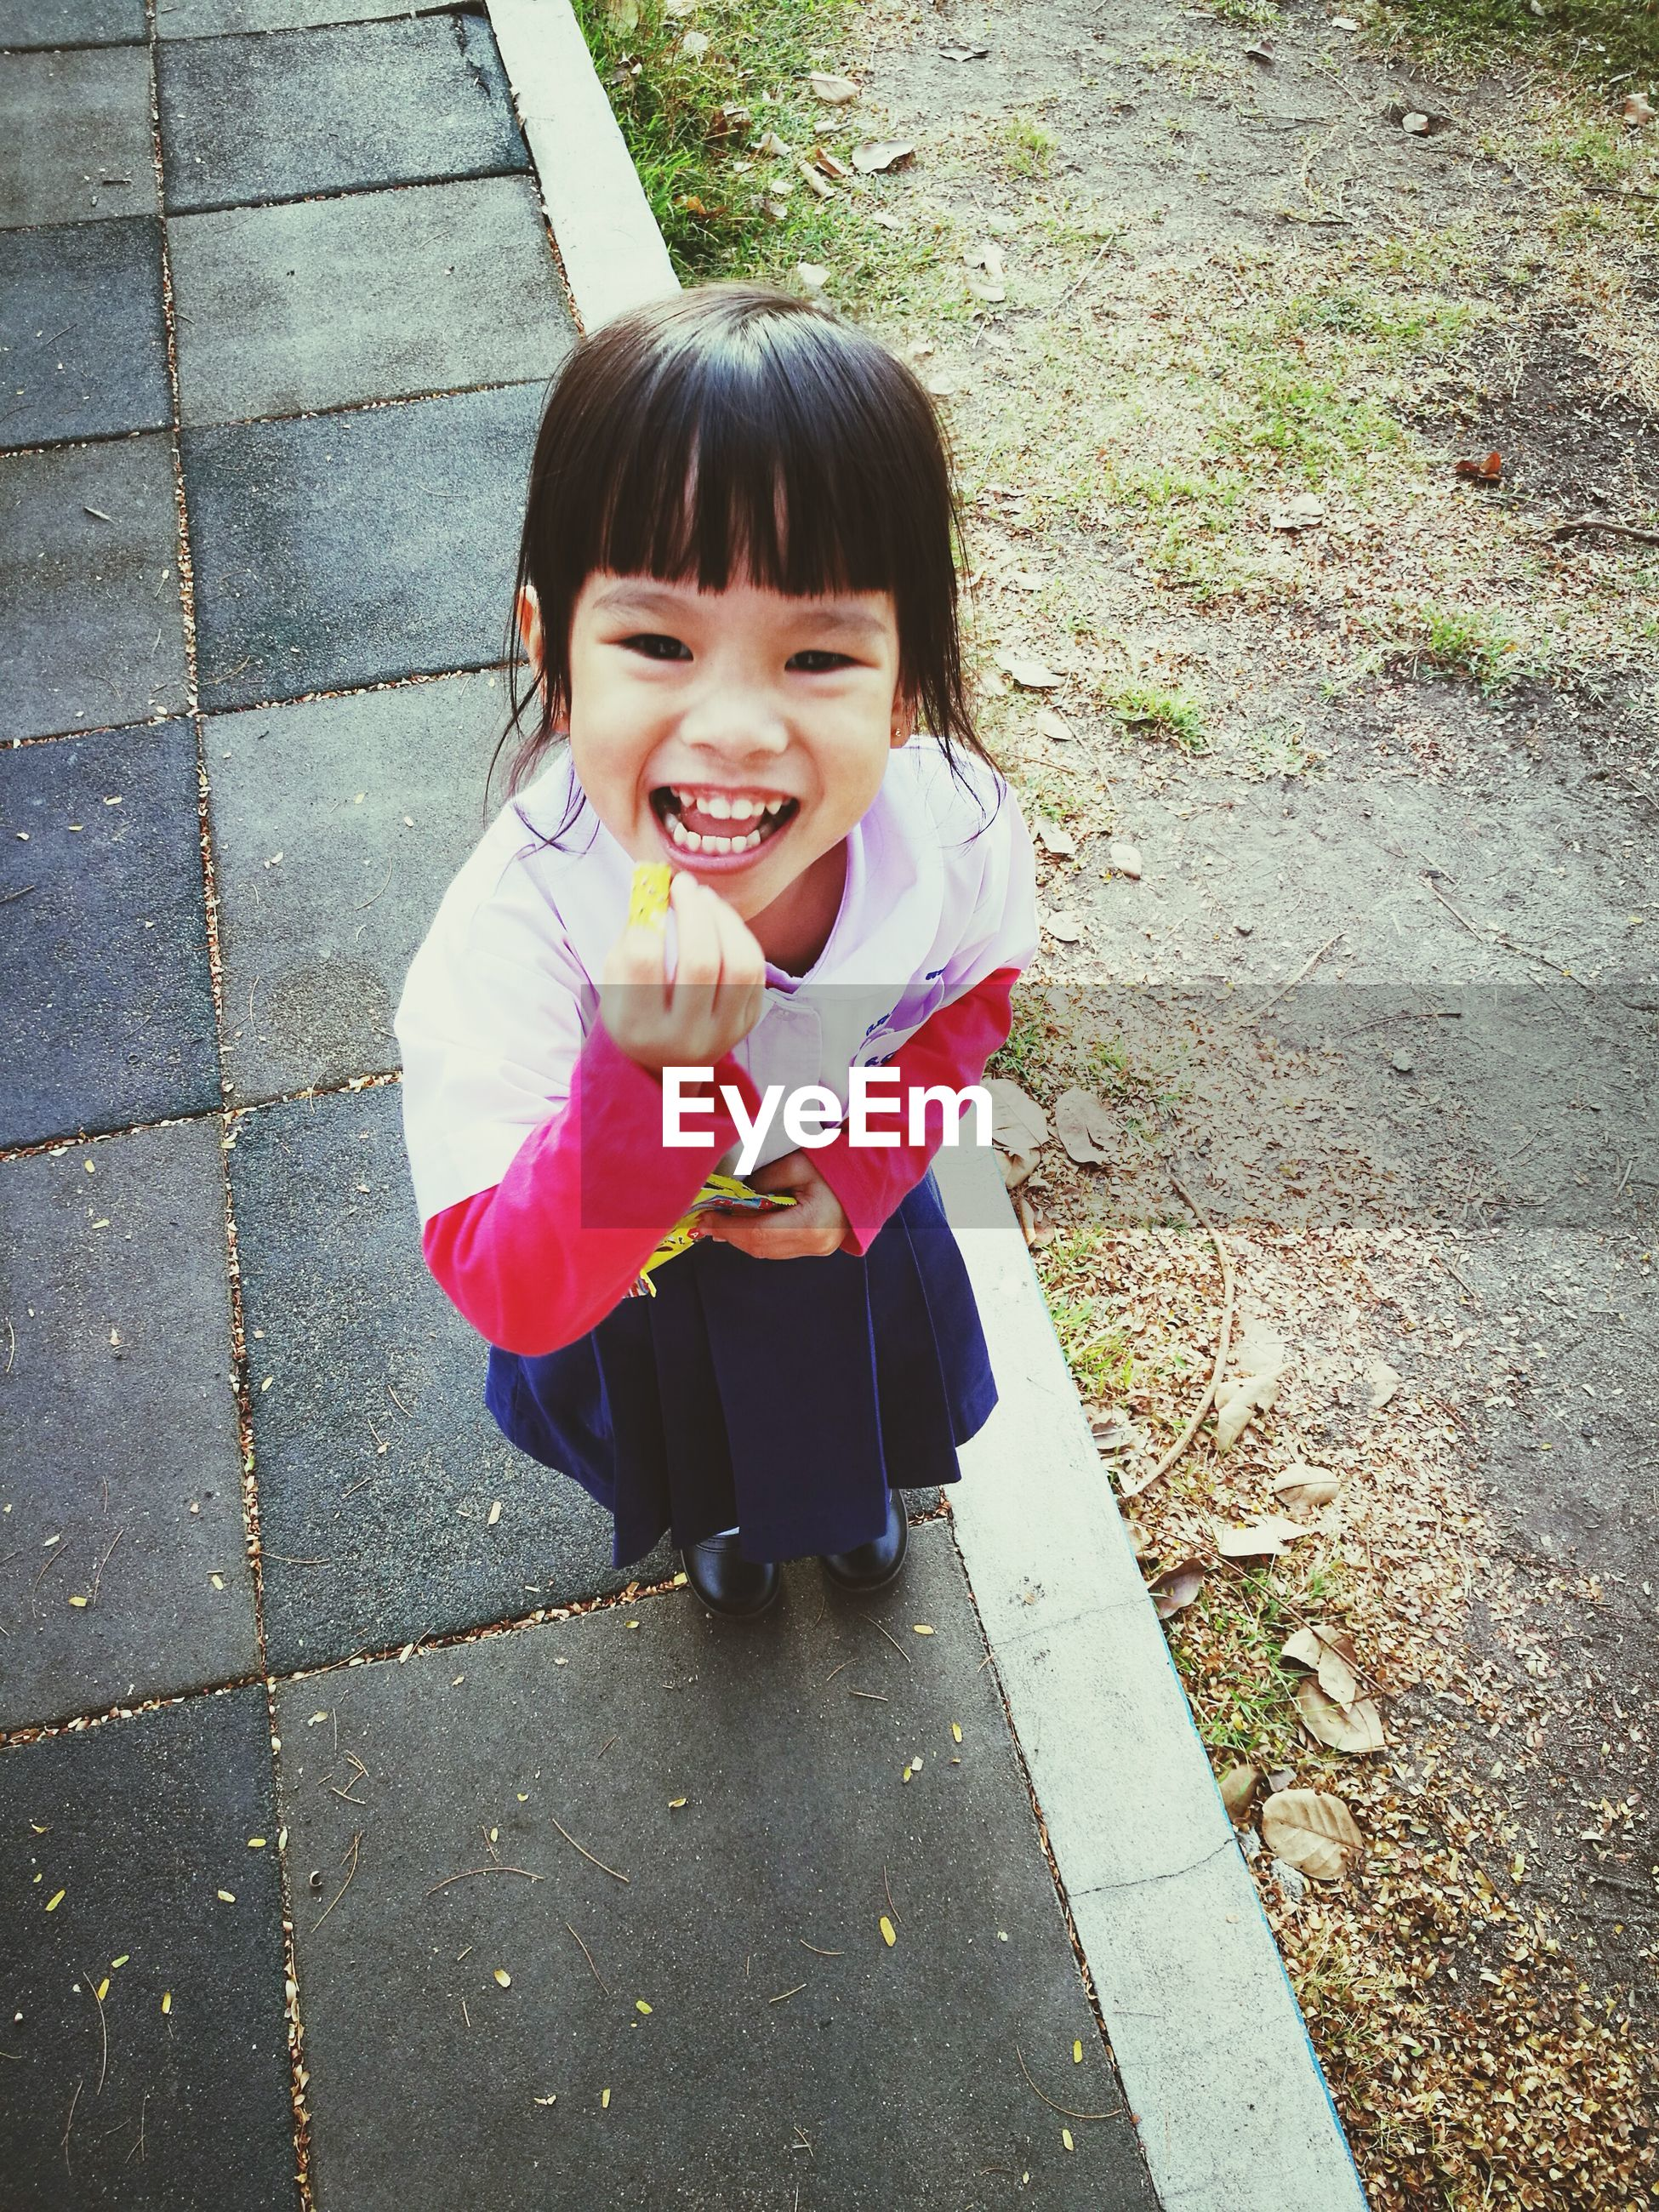 childhood, high angle view, innocence, real people, child, outdoors, bangs, cute, full length, girls, one person, looking at camera, portrait, happiness, smiling, day, cheerful, people